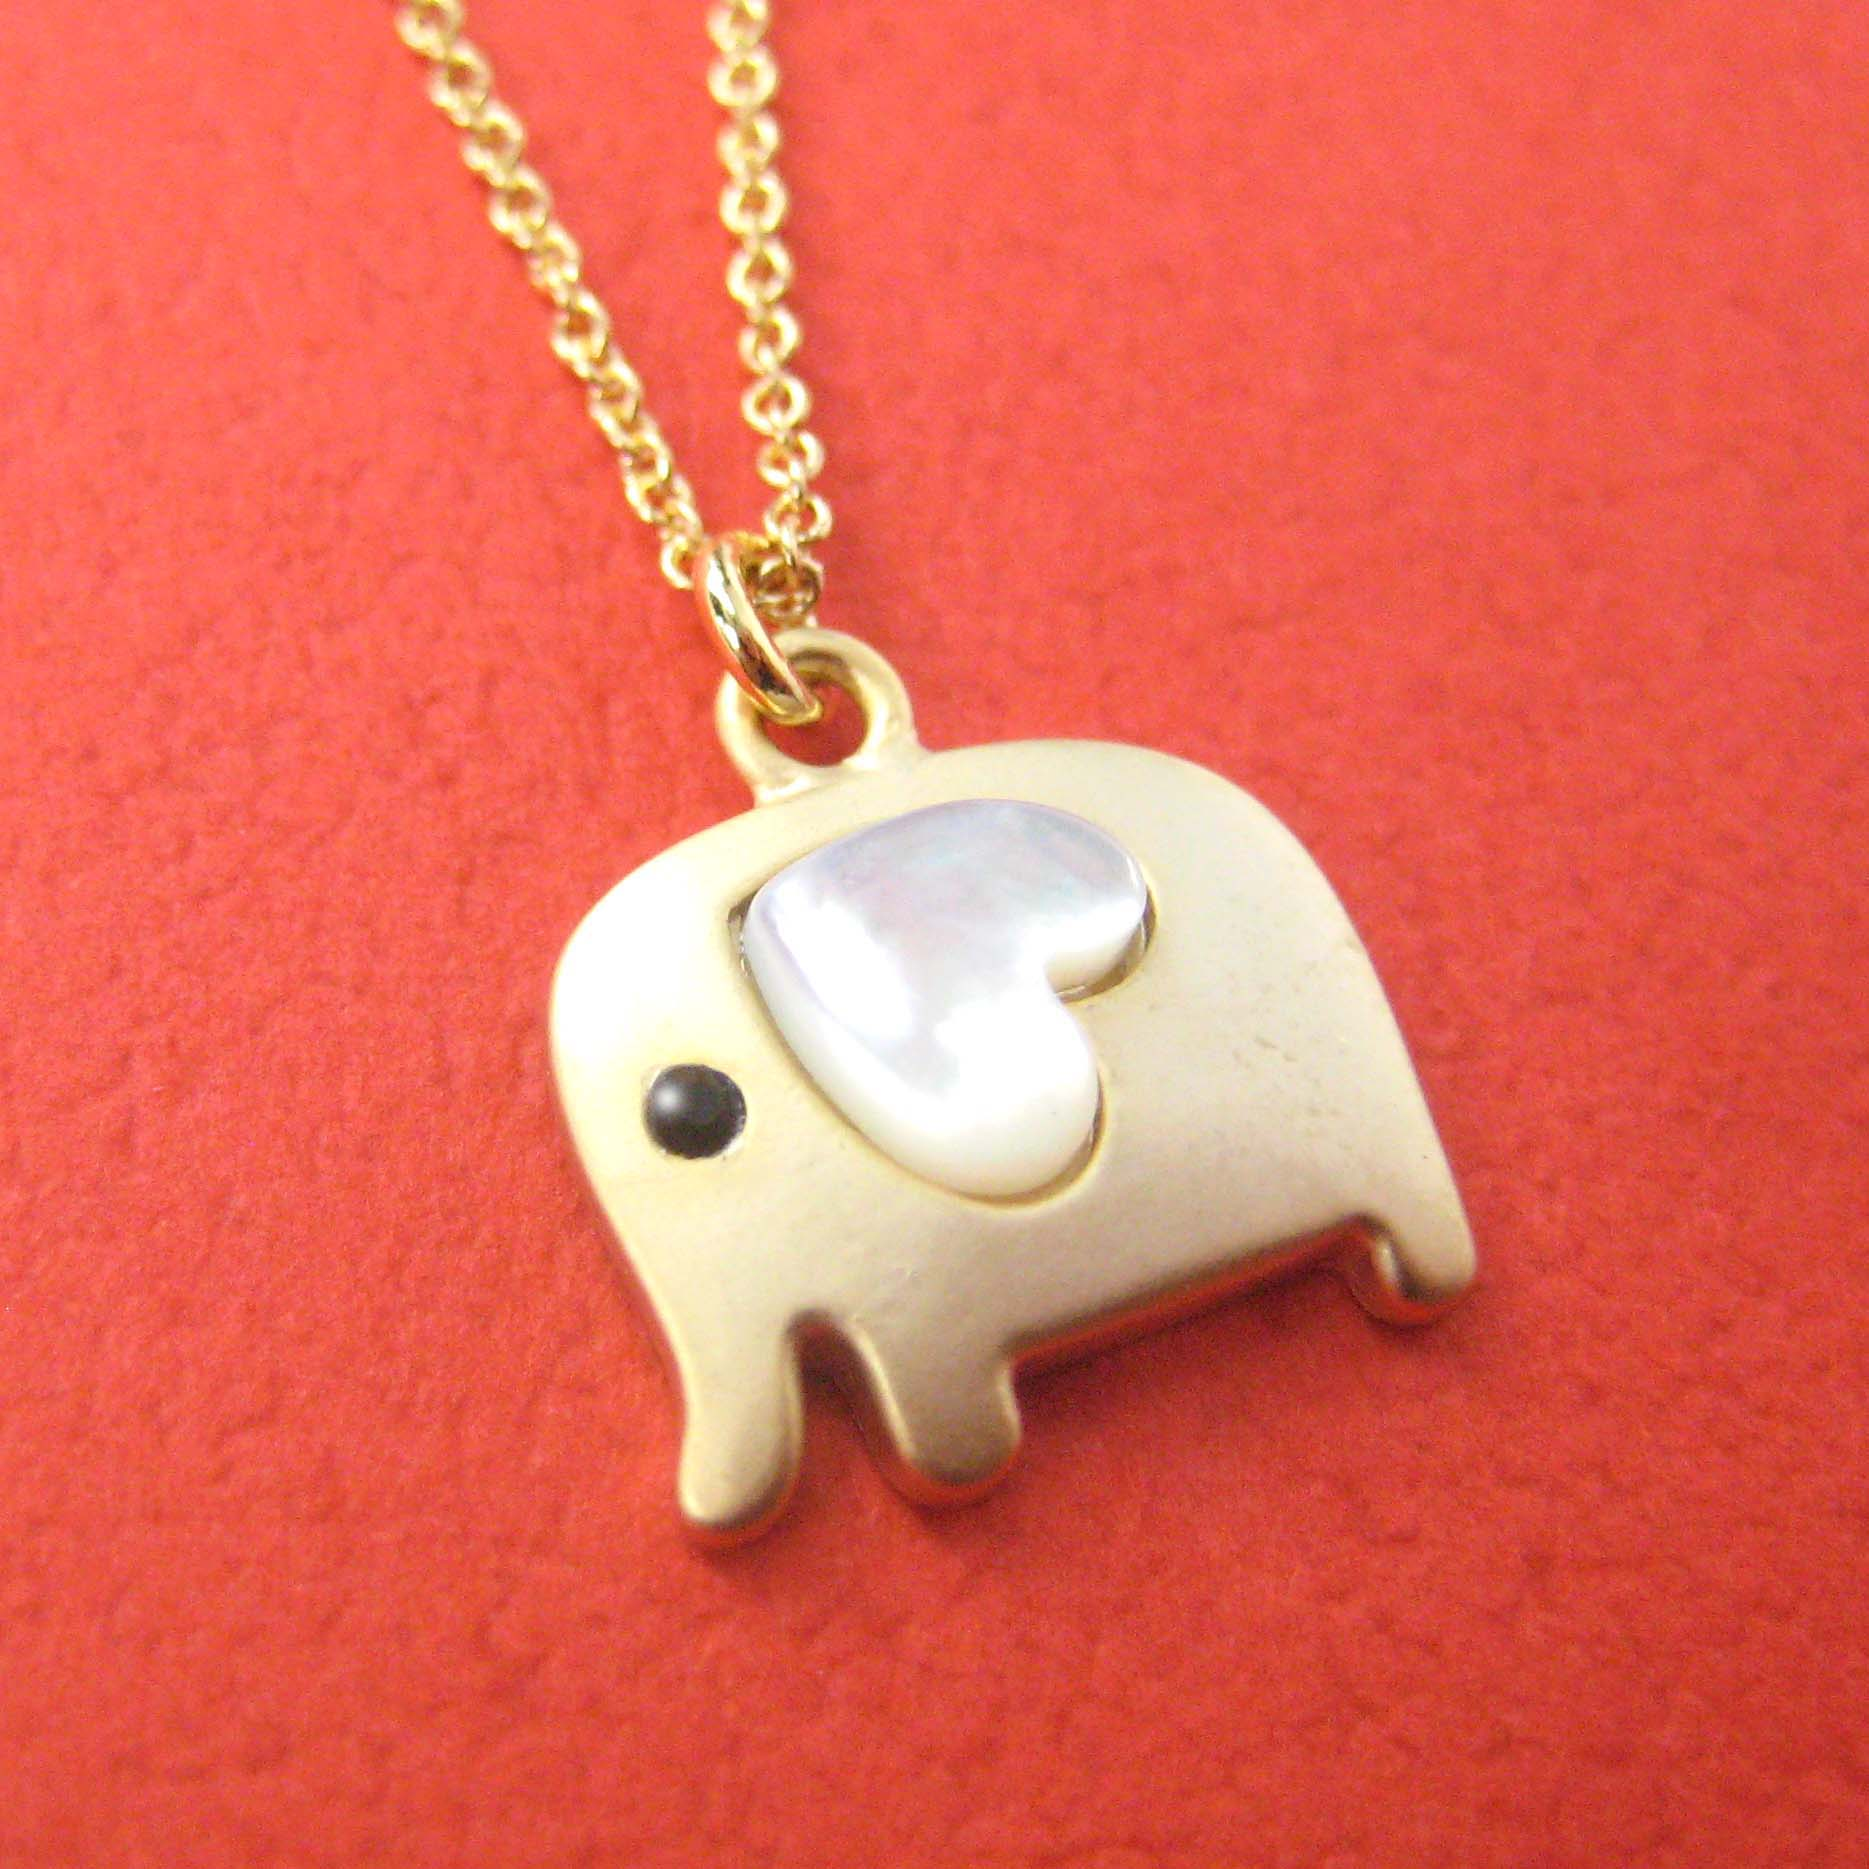 small-elephant-animal-necklace-in-gold-with-heart-allergy-free